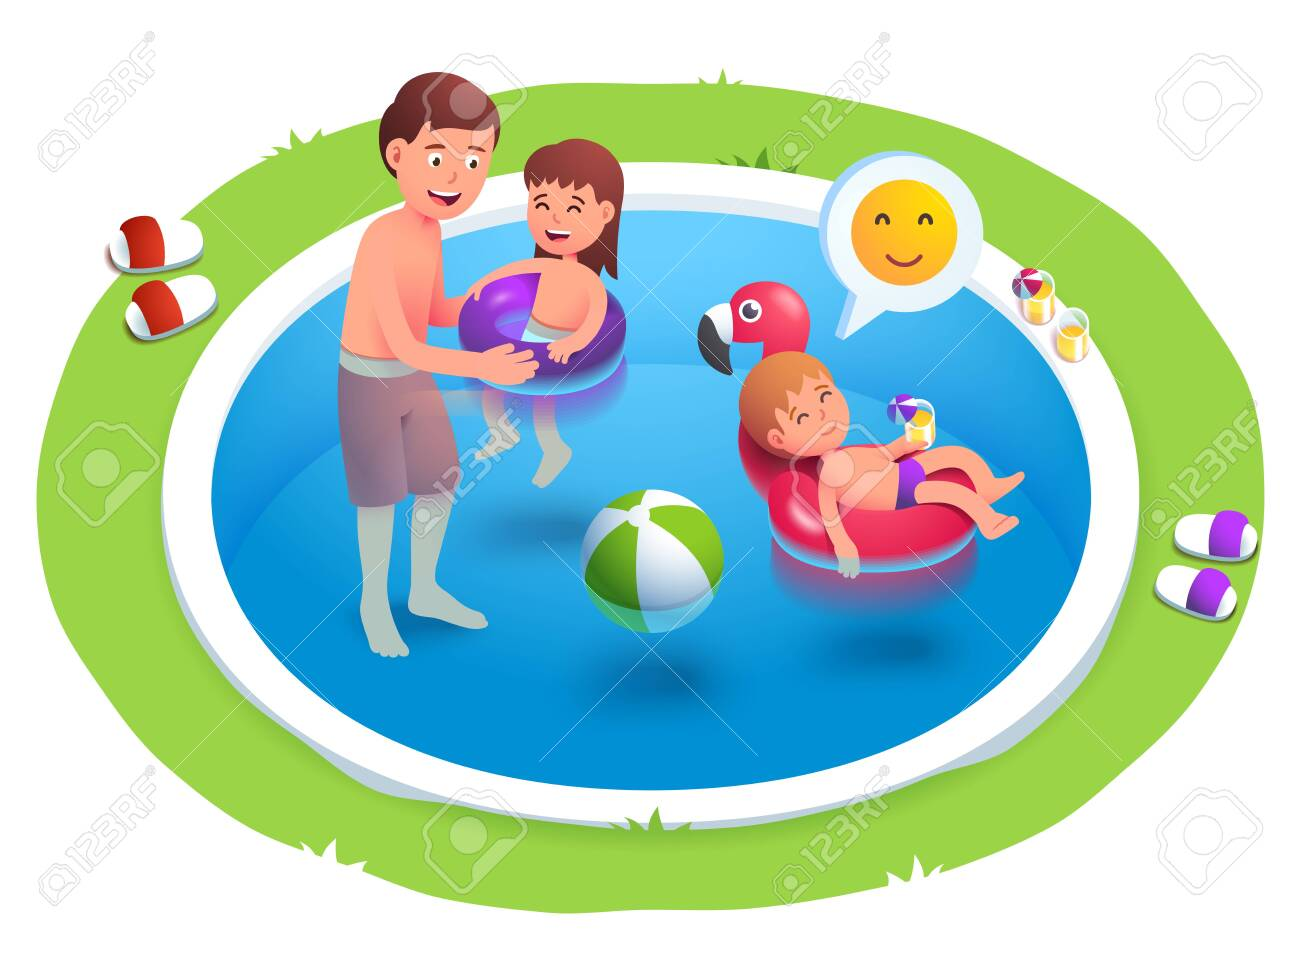 Kids and father swimming in back yard pool - 154063843